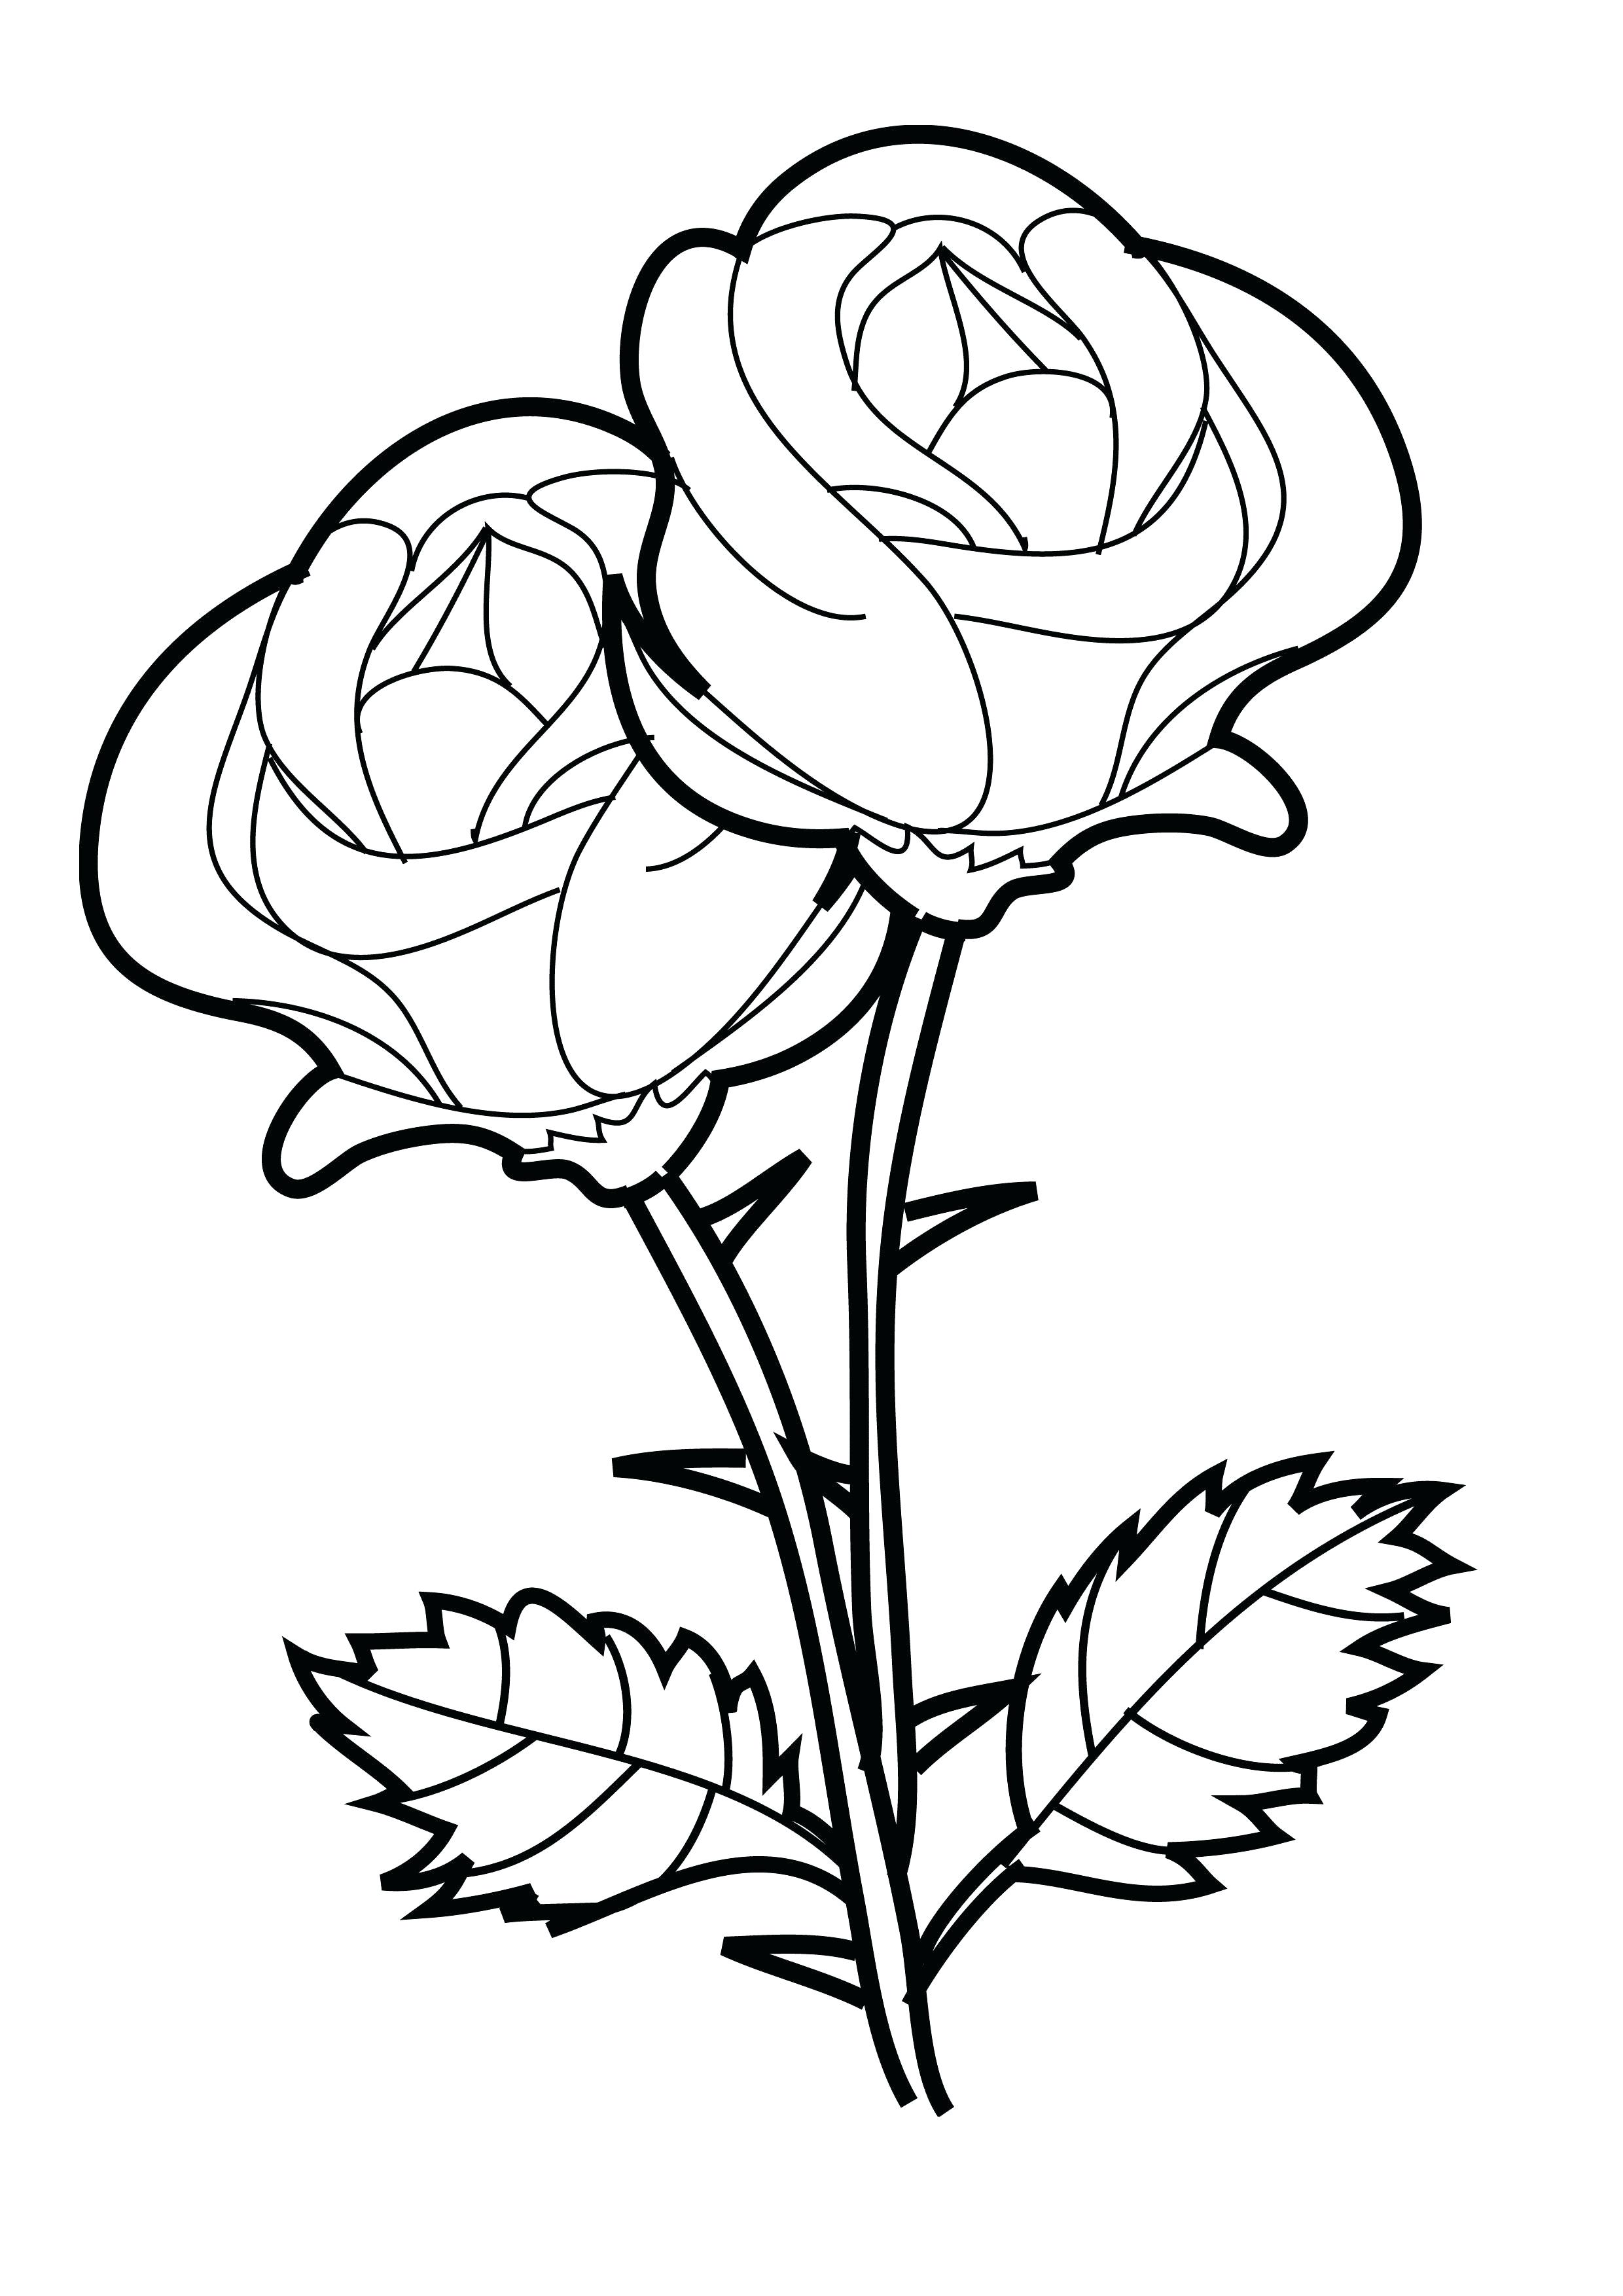 2480x3508 Coloring Pages Of Thorns Iron Man Coloring Pages